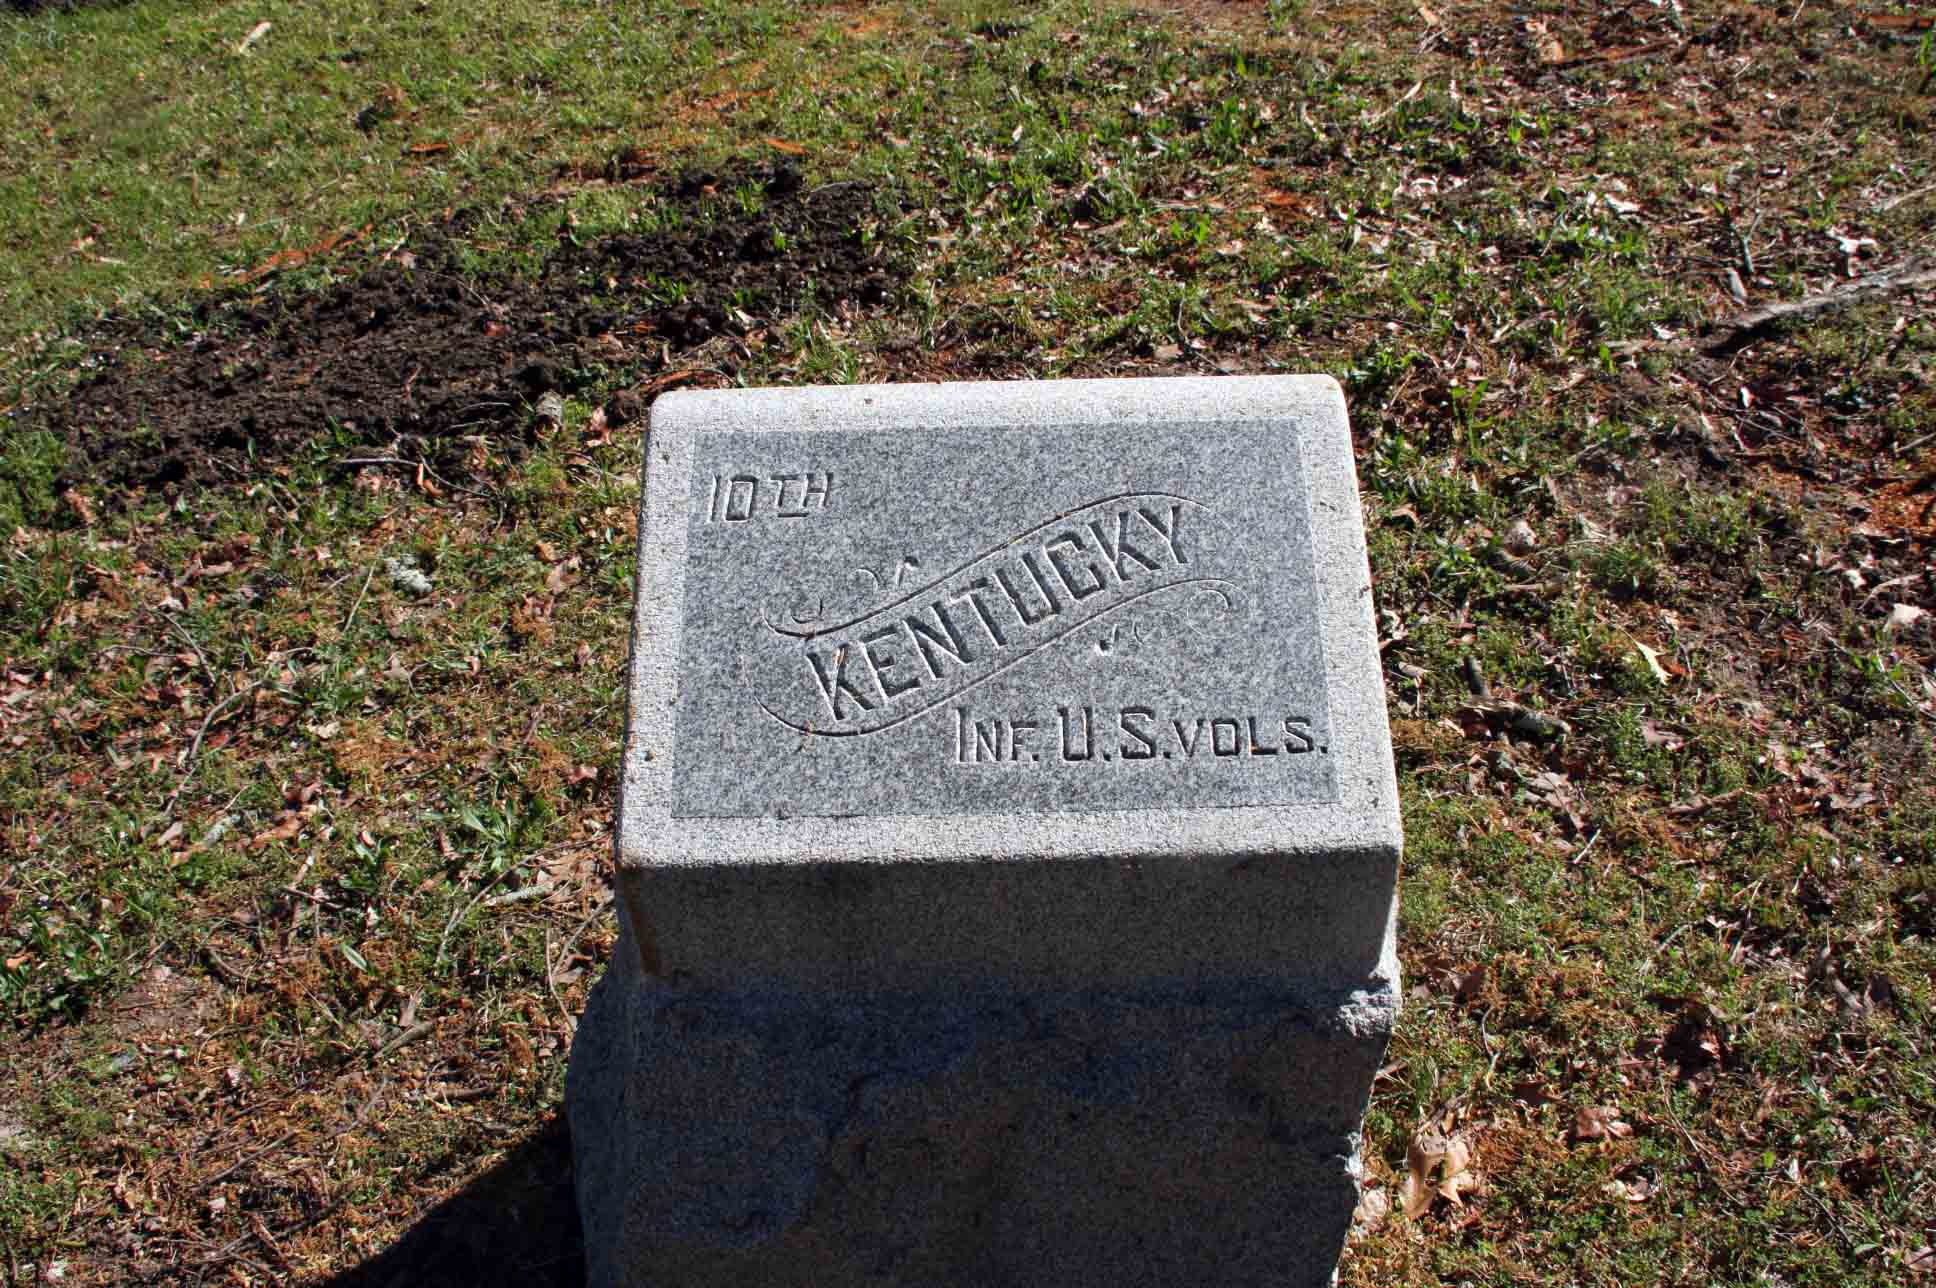 10th Kentucky Infantry Regiment (US Vols) Marker, click photo to enlarge.